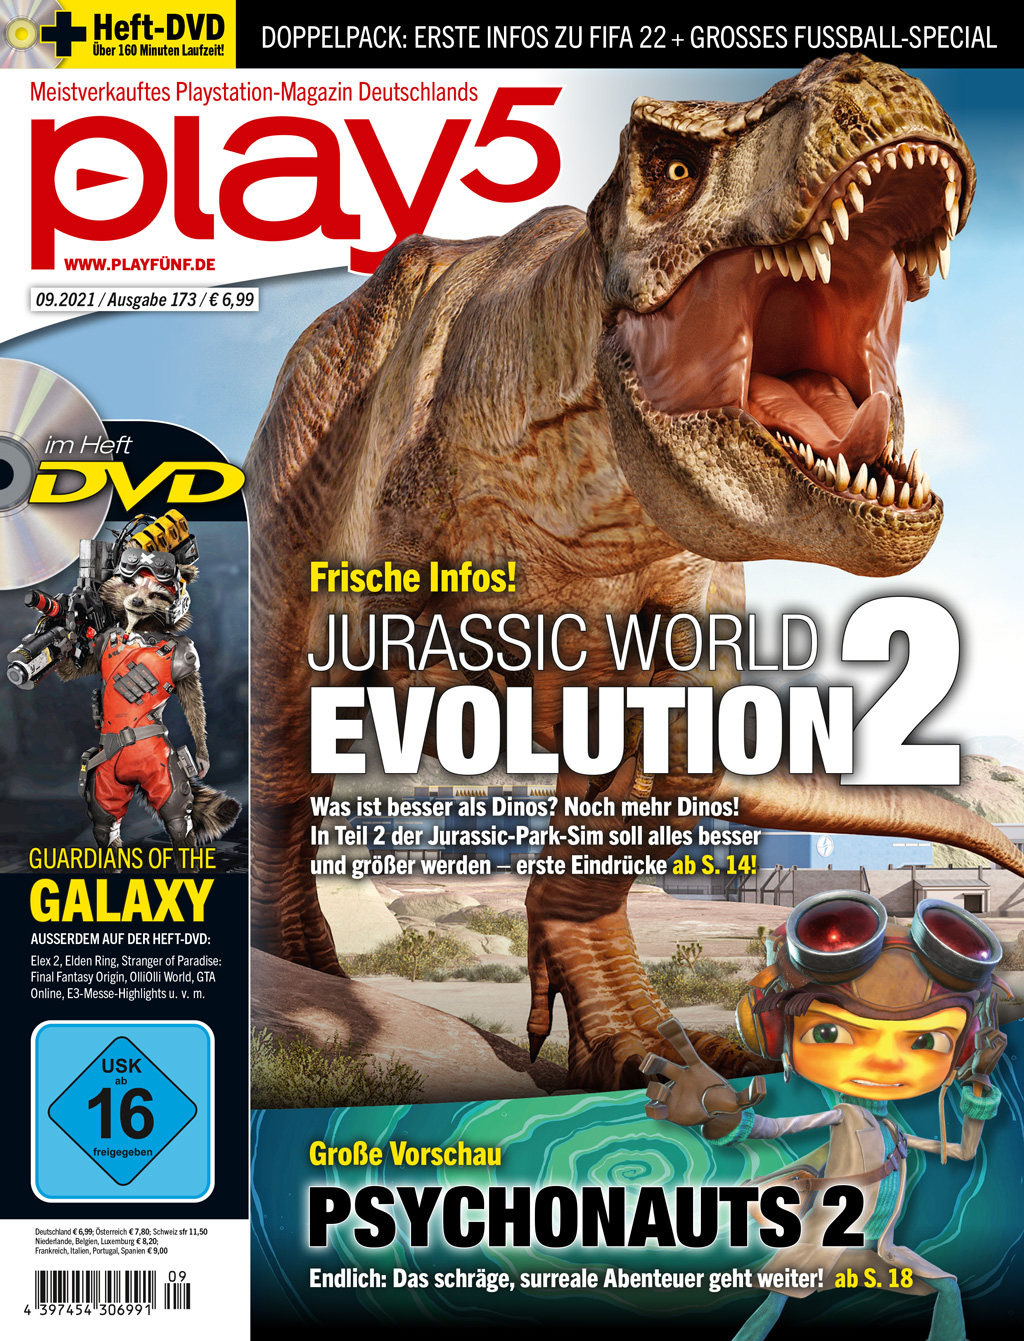 play5 09/21 with cover story for Jurassic World: Evolution 2, preview for Psychonauts 2 and FIFA 22